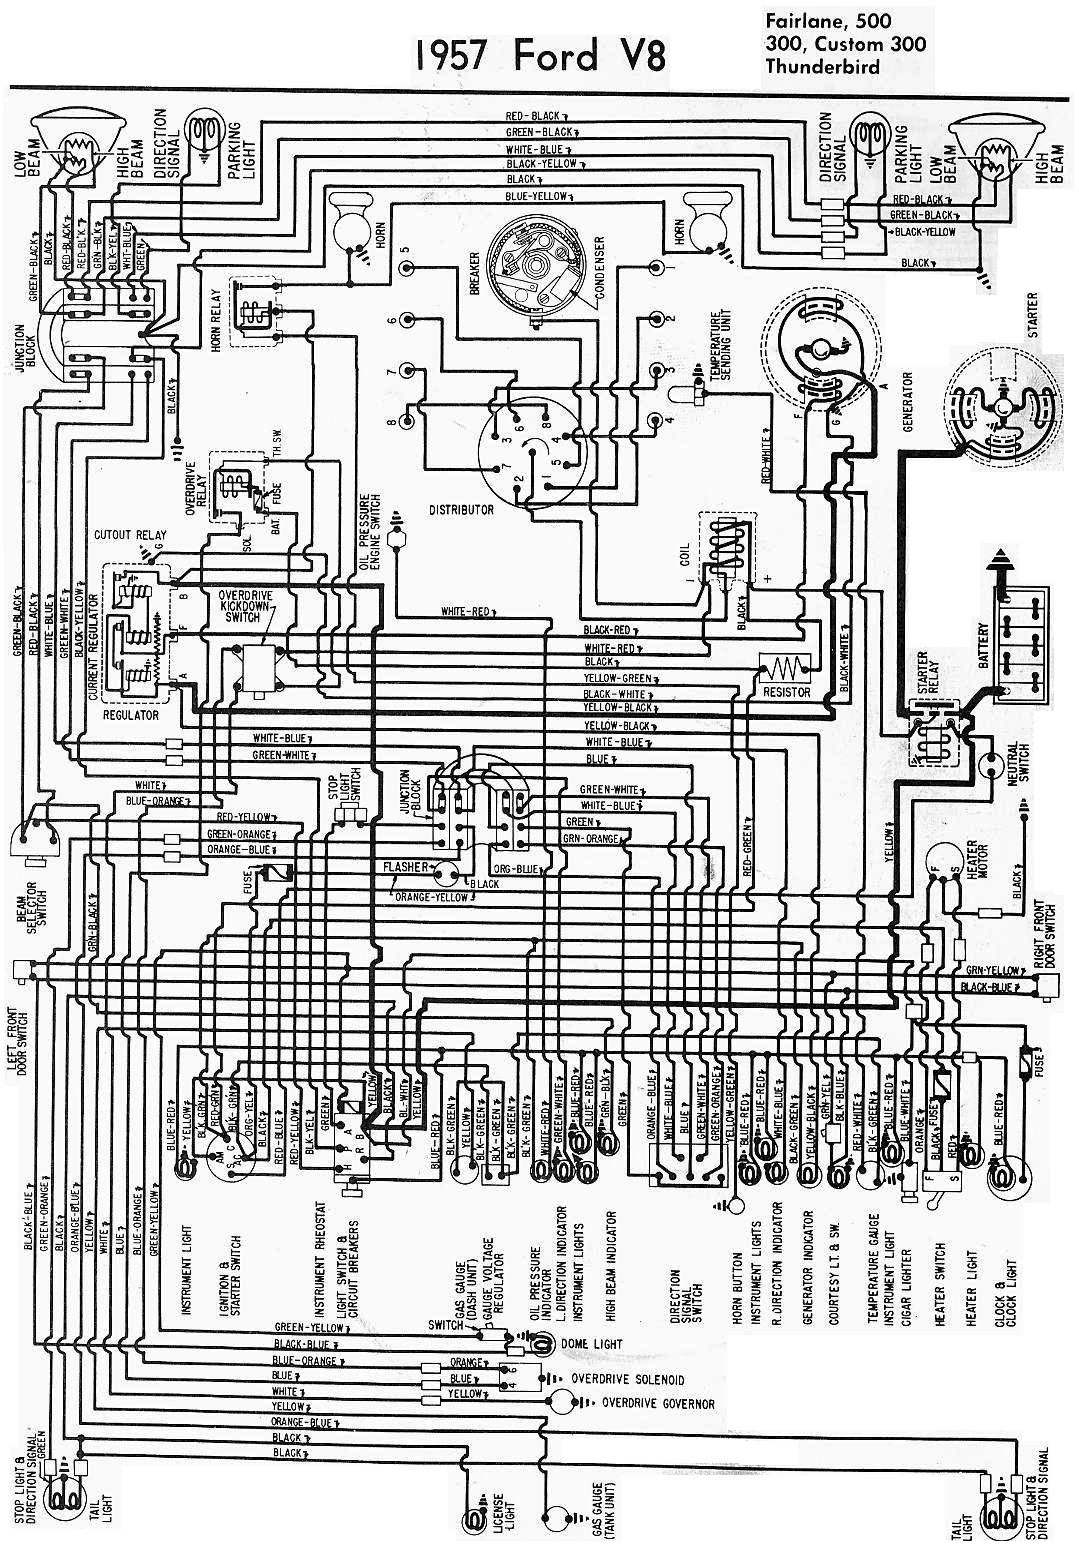 ford nc fairlane wiring diagram 1957 ford fairlane 500, 300, custom 300, and thunderbird ... #2